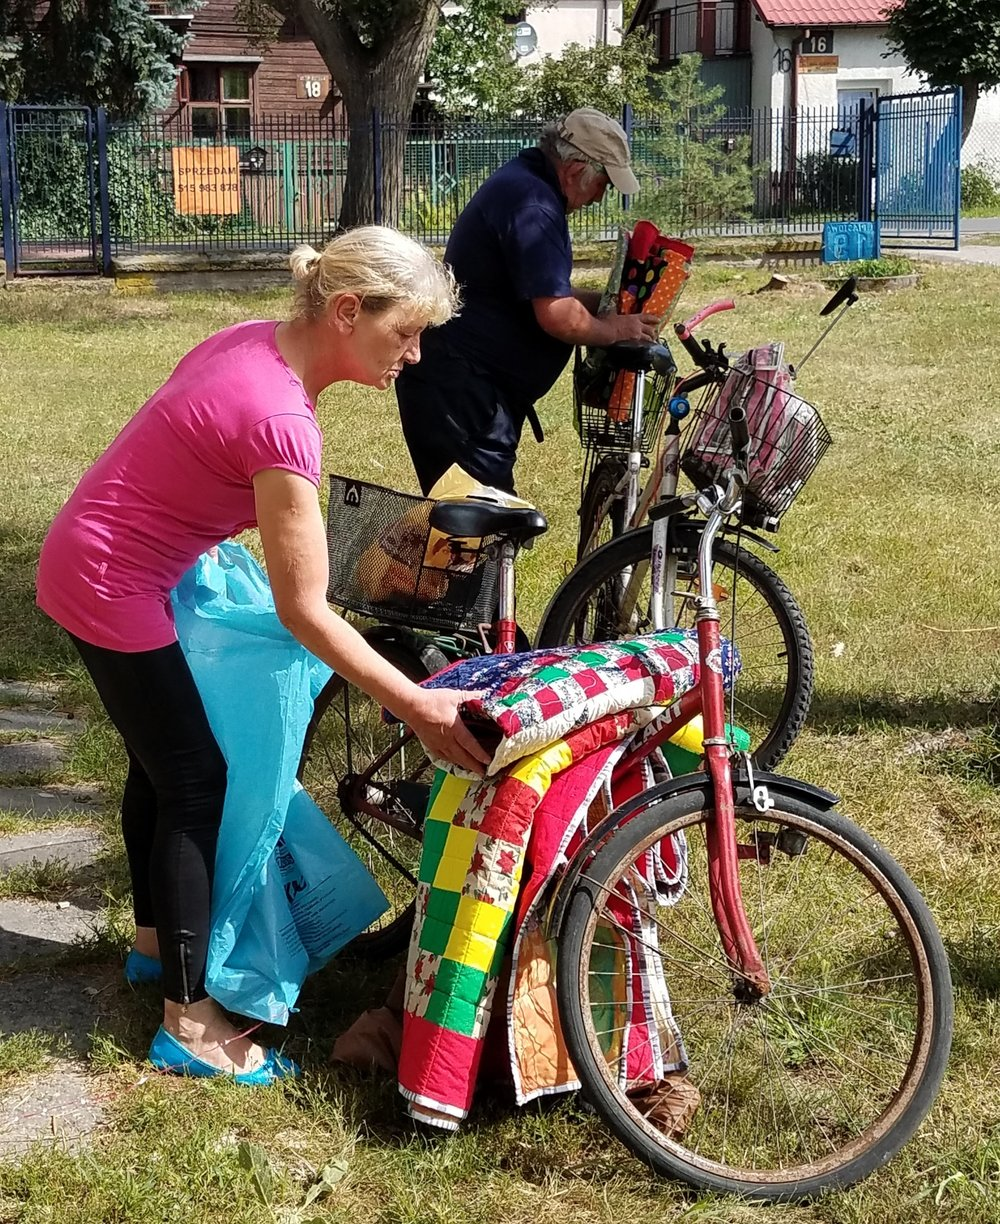 Here are some people packing up their quilts on their bikes. This was the most common form of transportation we saw today.